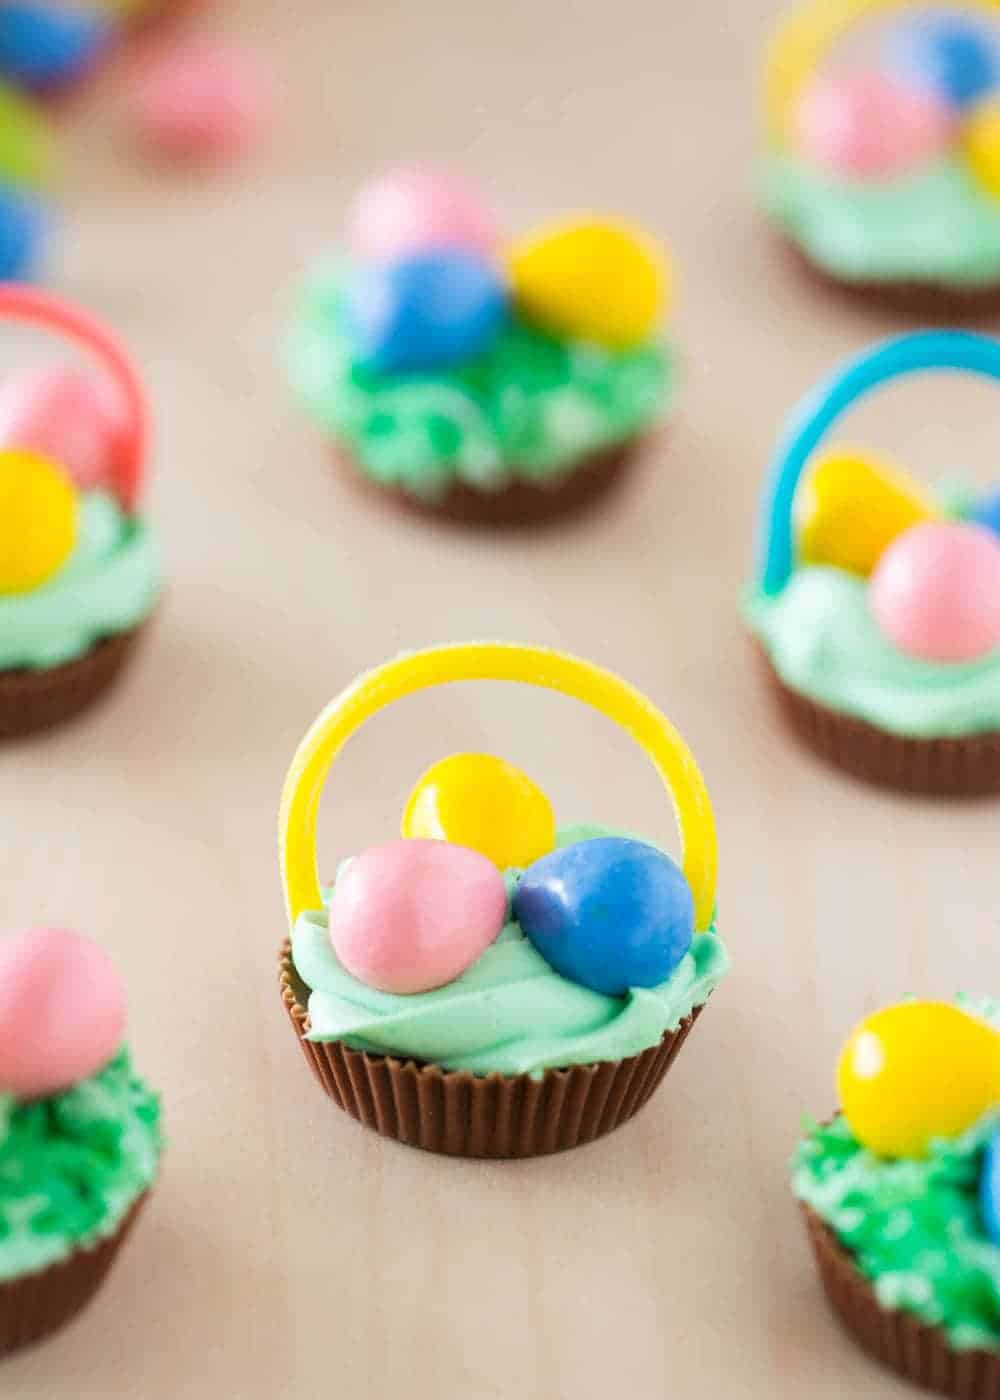 Mini Chocolate Easter Baskets - made from a Reese's, these adorable and delicious little treats are easy to make and are certain to put a smile on everyone's face!